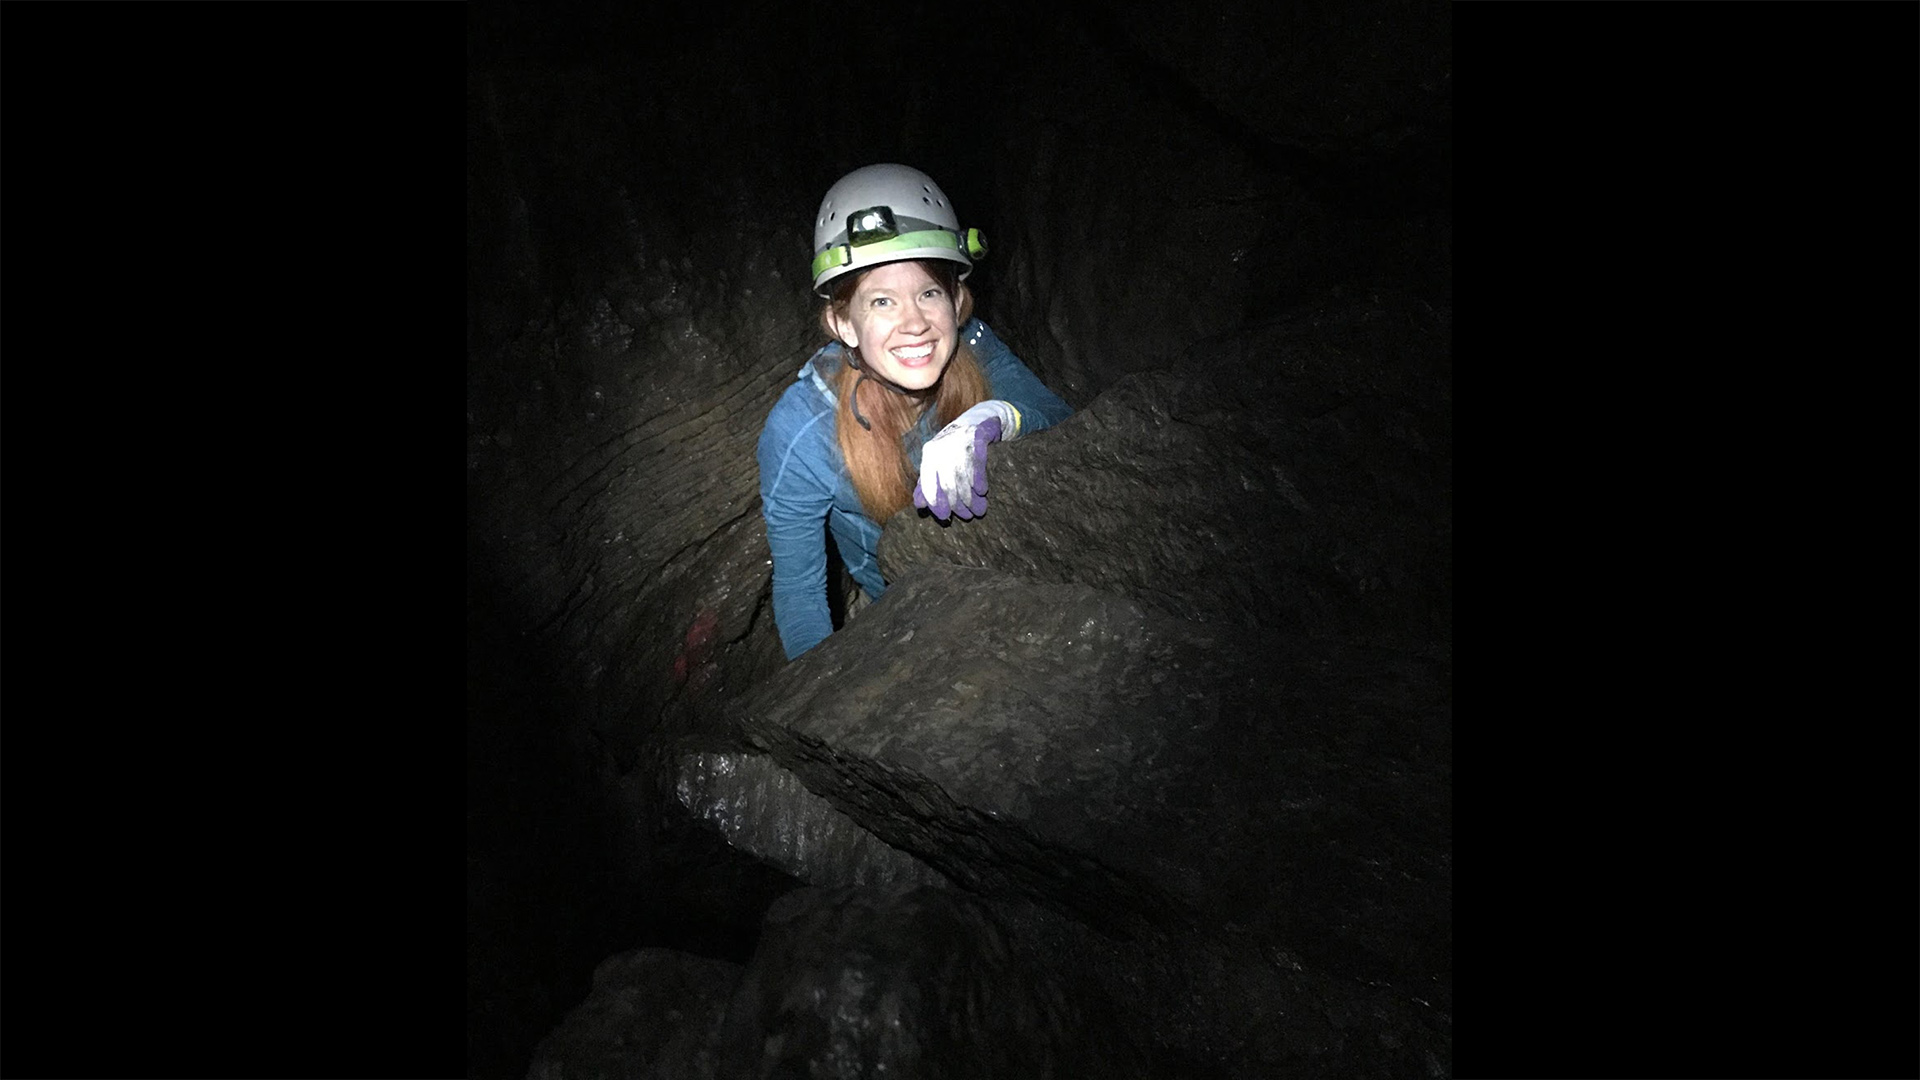 Photograph of Carol Krause in a dark cave. She is fair skinned with long orange hair, in this photo she is wearing a light blue sweater and has a big smile on her face, showing all of her teeth. On her head is a safety helmet with a light attached that is the only source of light in the photo. She has white gloves on her hand and is holding onto the rock in front of her. Only the top half (above her torso) is showing and the rest is behind more rocks.